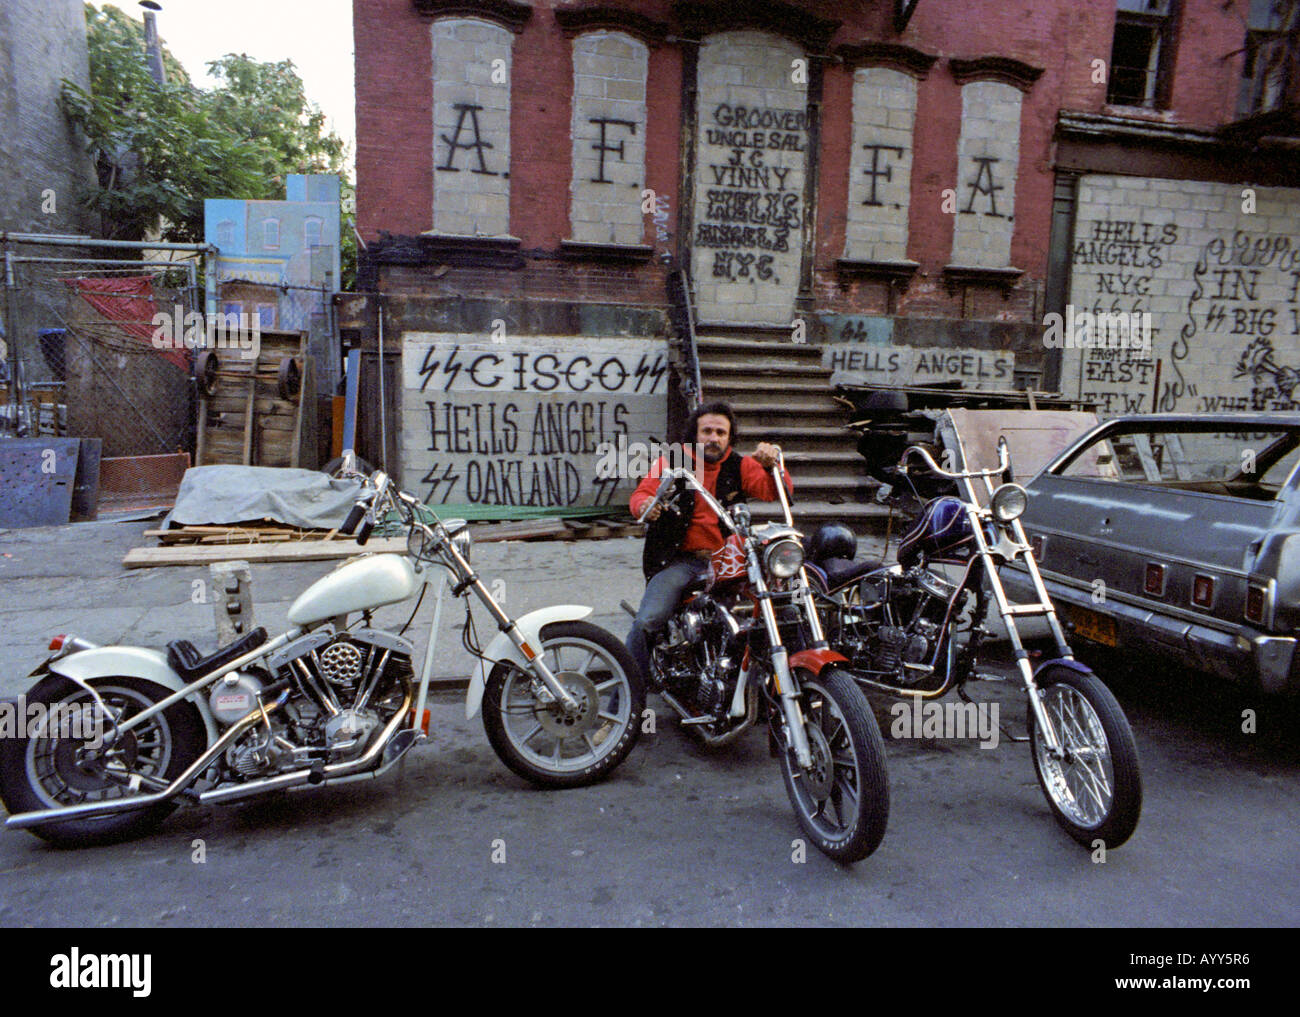 Hells Angels Of New York At 80 Ties Stock Photo Royalty Free Image 9830197